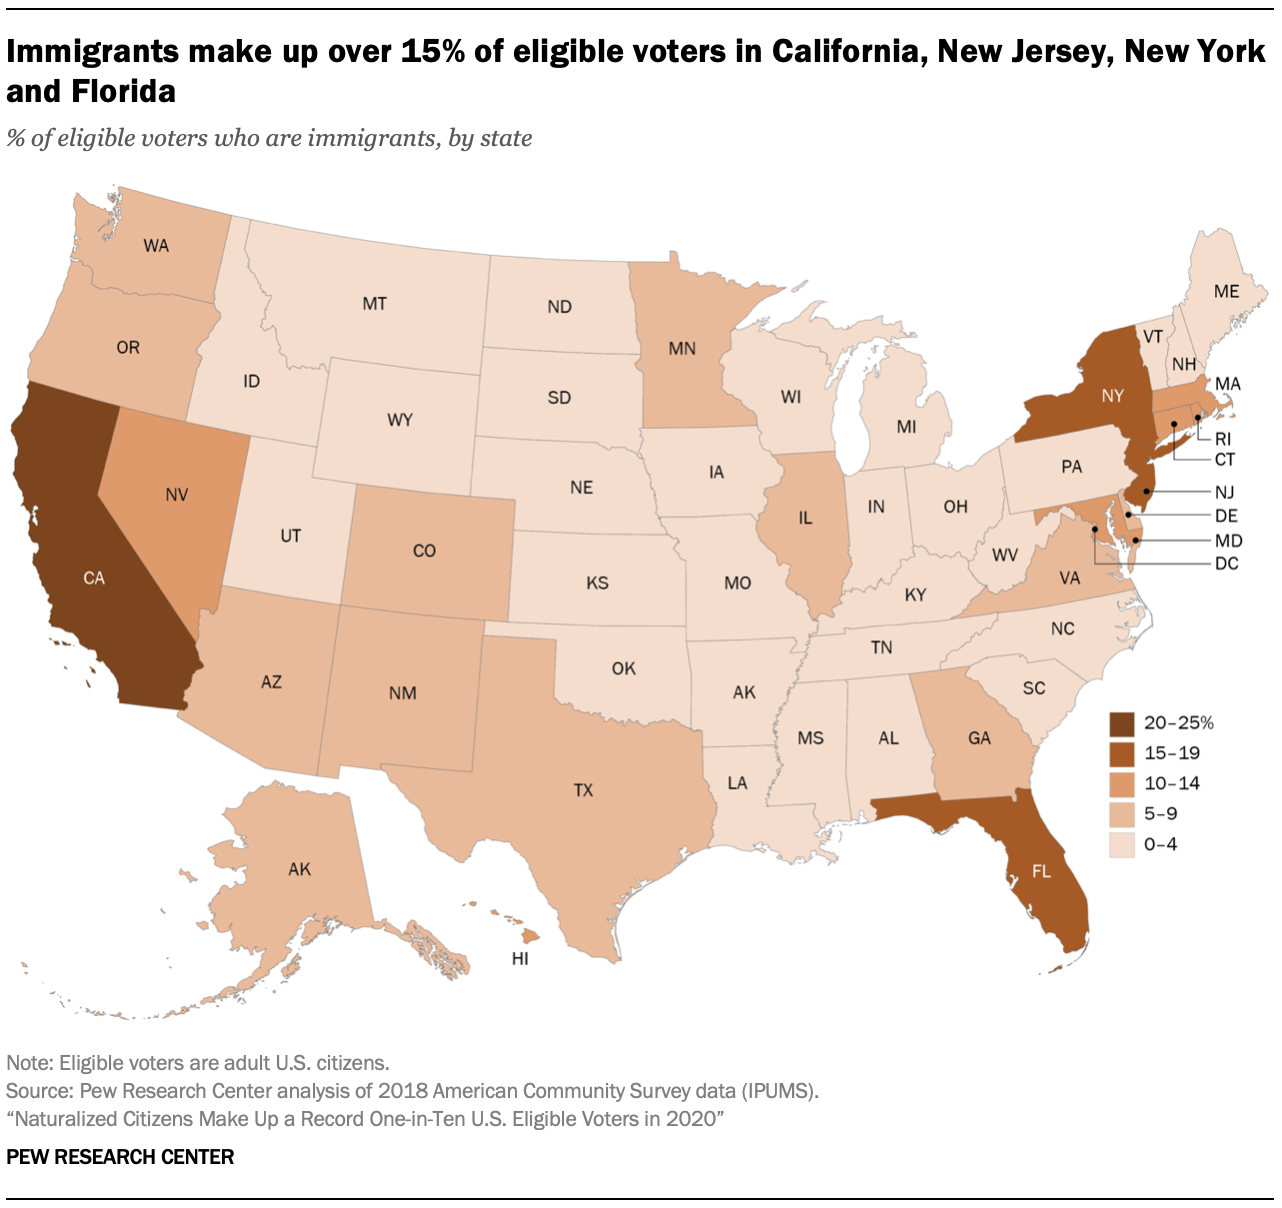 Immigrants make up over 15% of eligible voters in California, New Jersey, New York and Florida